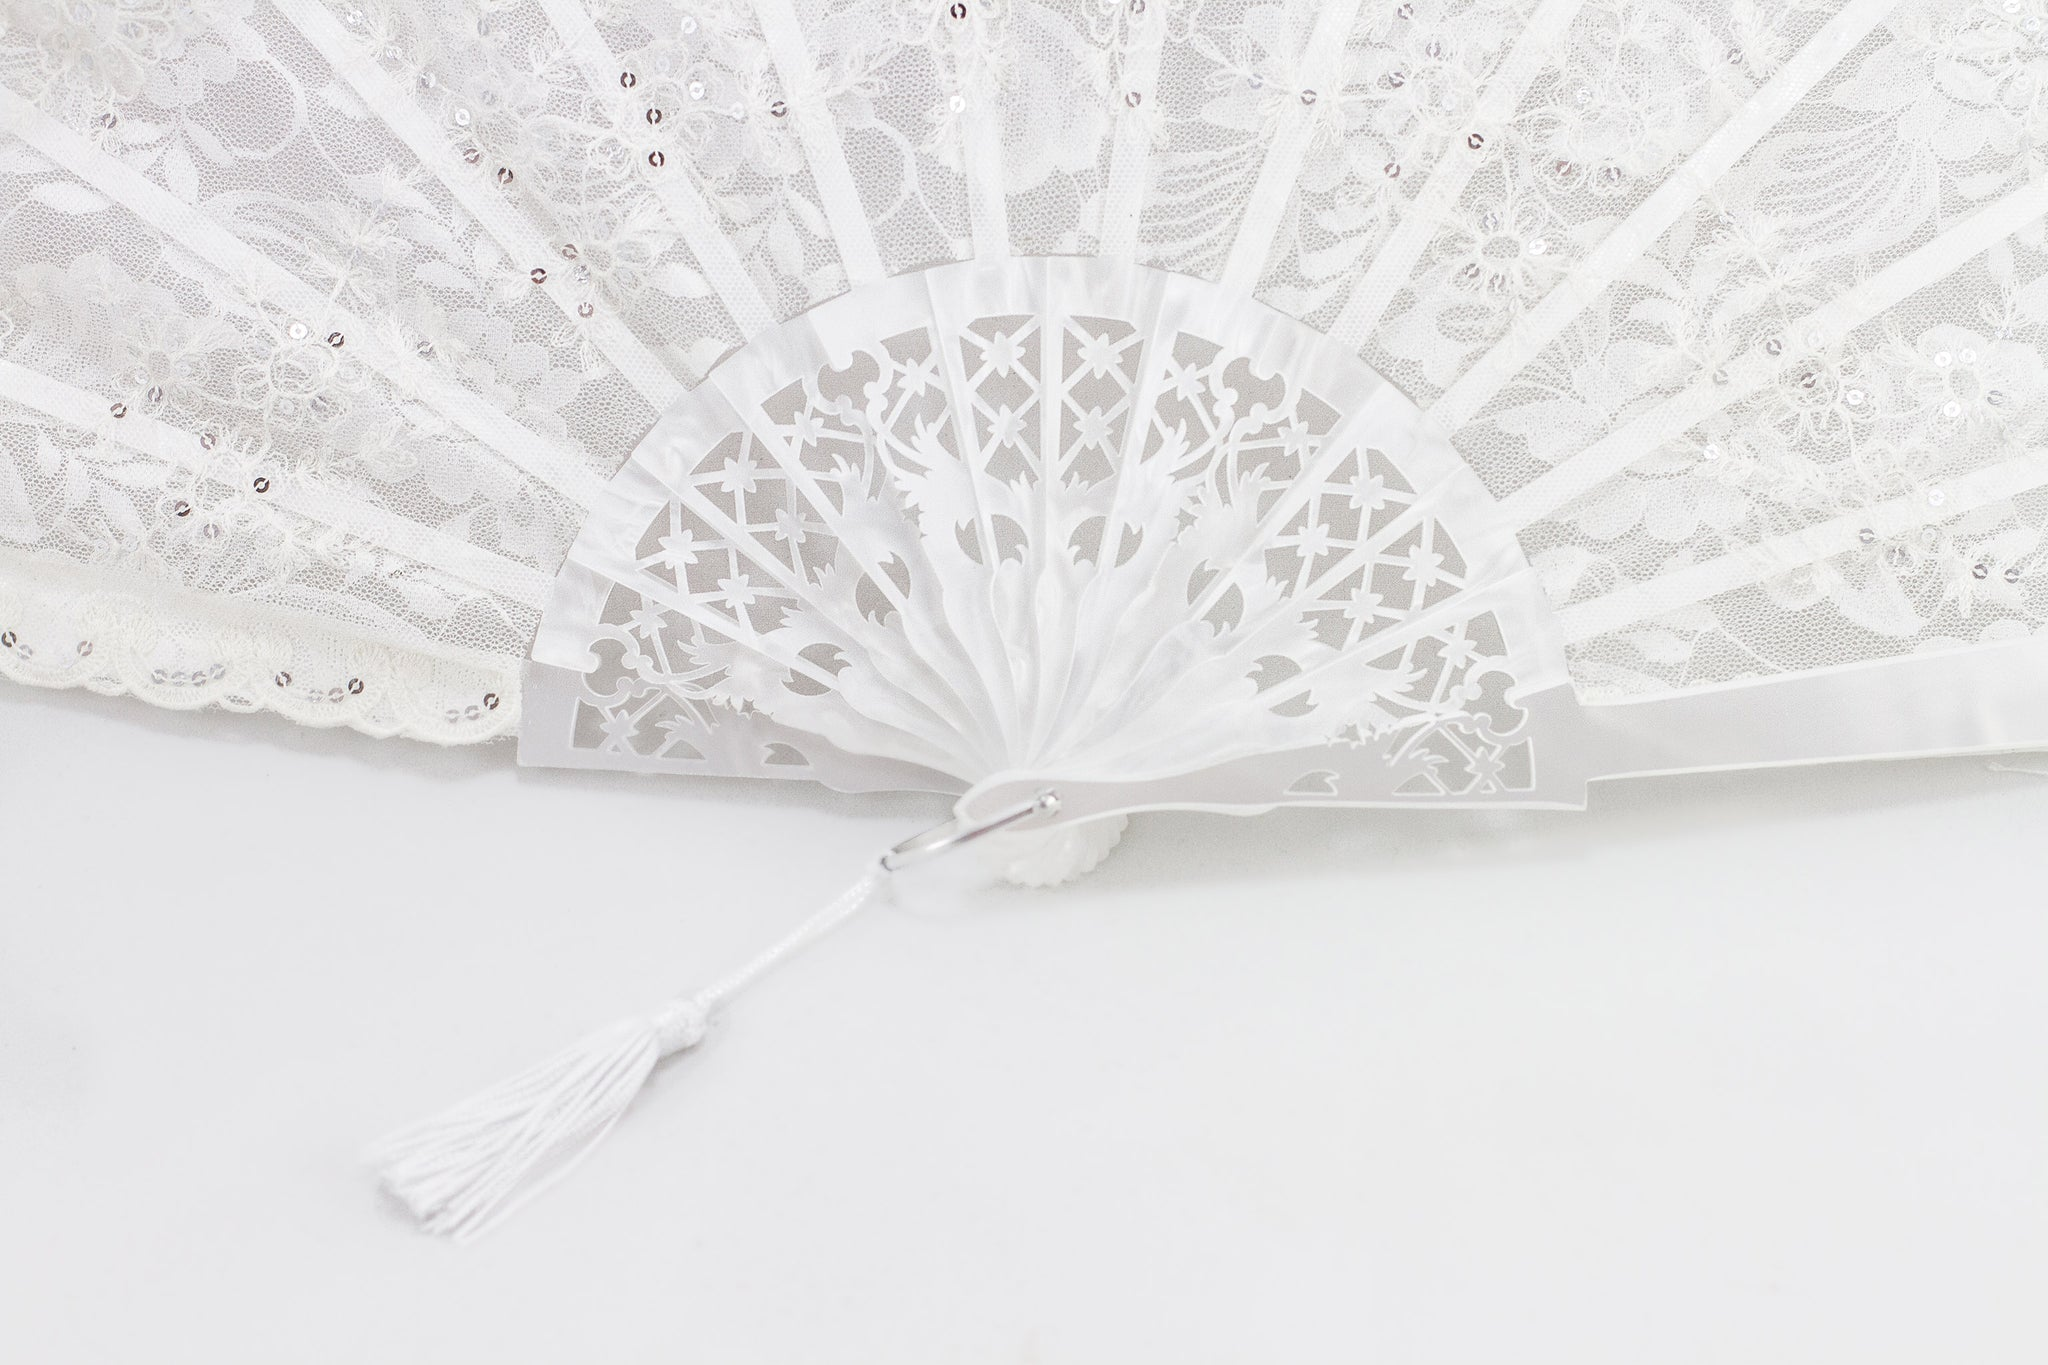 Atlanta Rockcocos handmade finest white lace fan adorned with hand sewn sequin close up